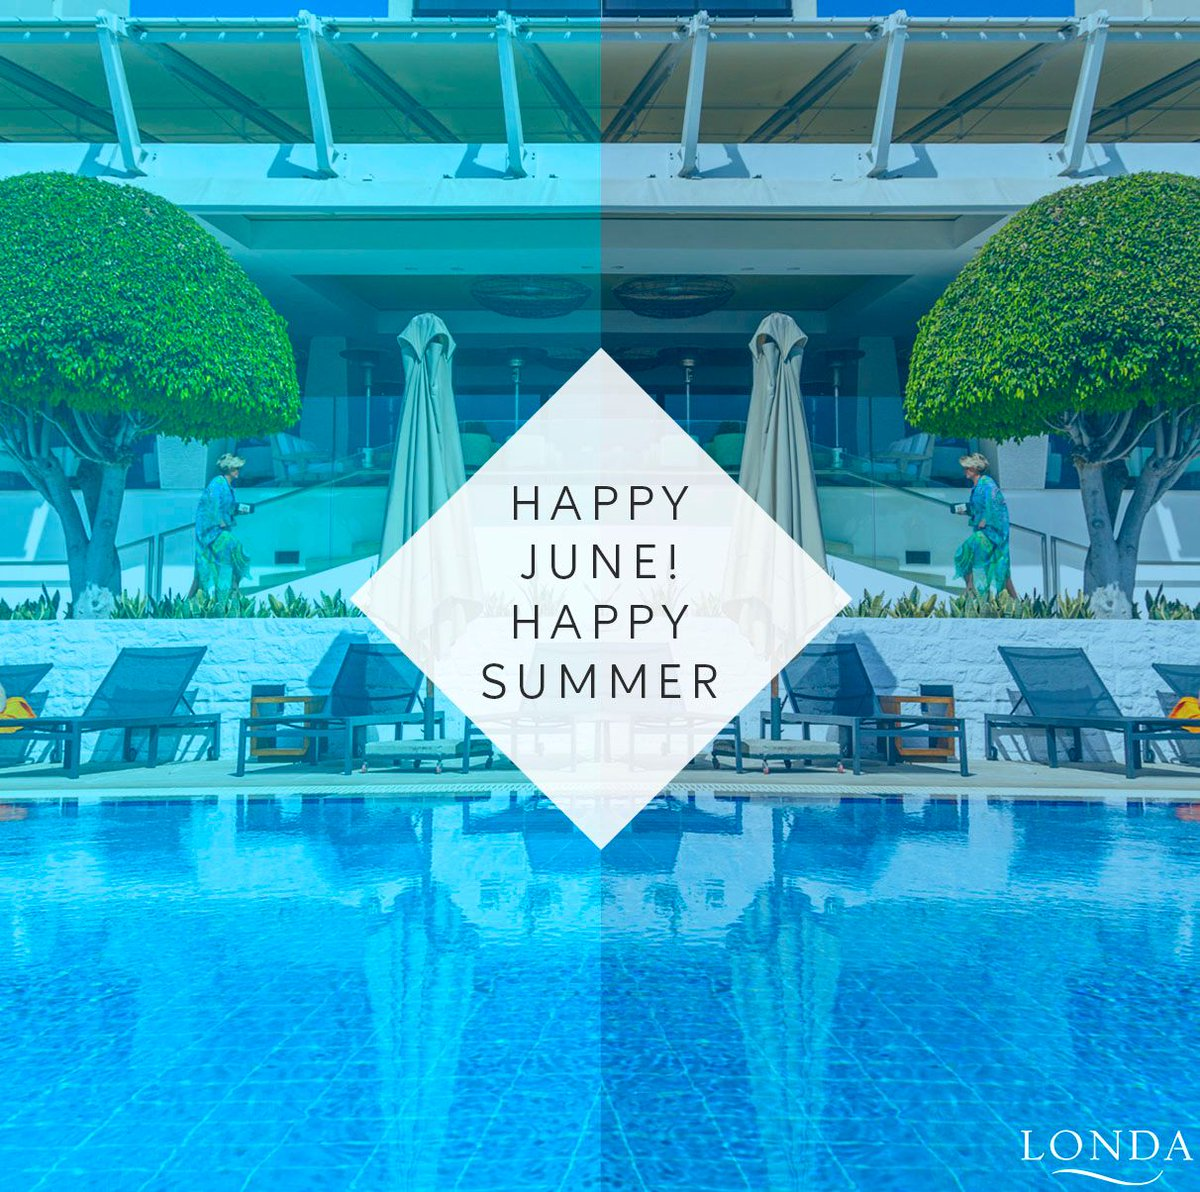 #NewMonth, New #Hope, New #Blessings, New #Life, New Goals, New Challenges… Let's hope & believe that #June will take back the negativities of the past months & bestow upon us the abundance of positivities… This June will be fabulous… after all #Summer is here!! 👏 #londahotel https://t.co/LZznEveM8i